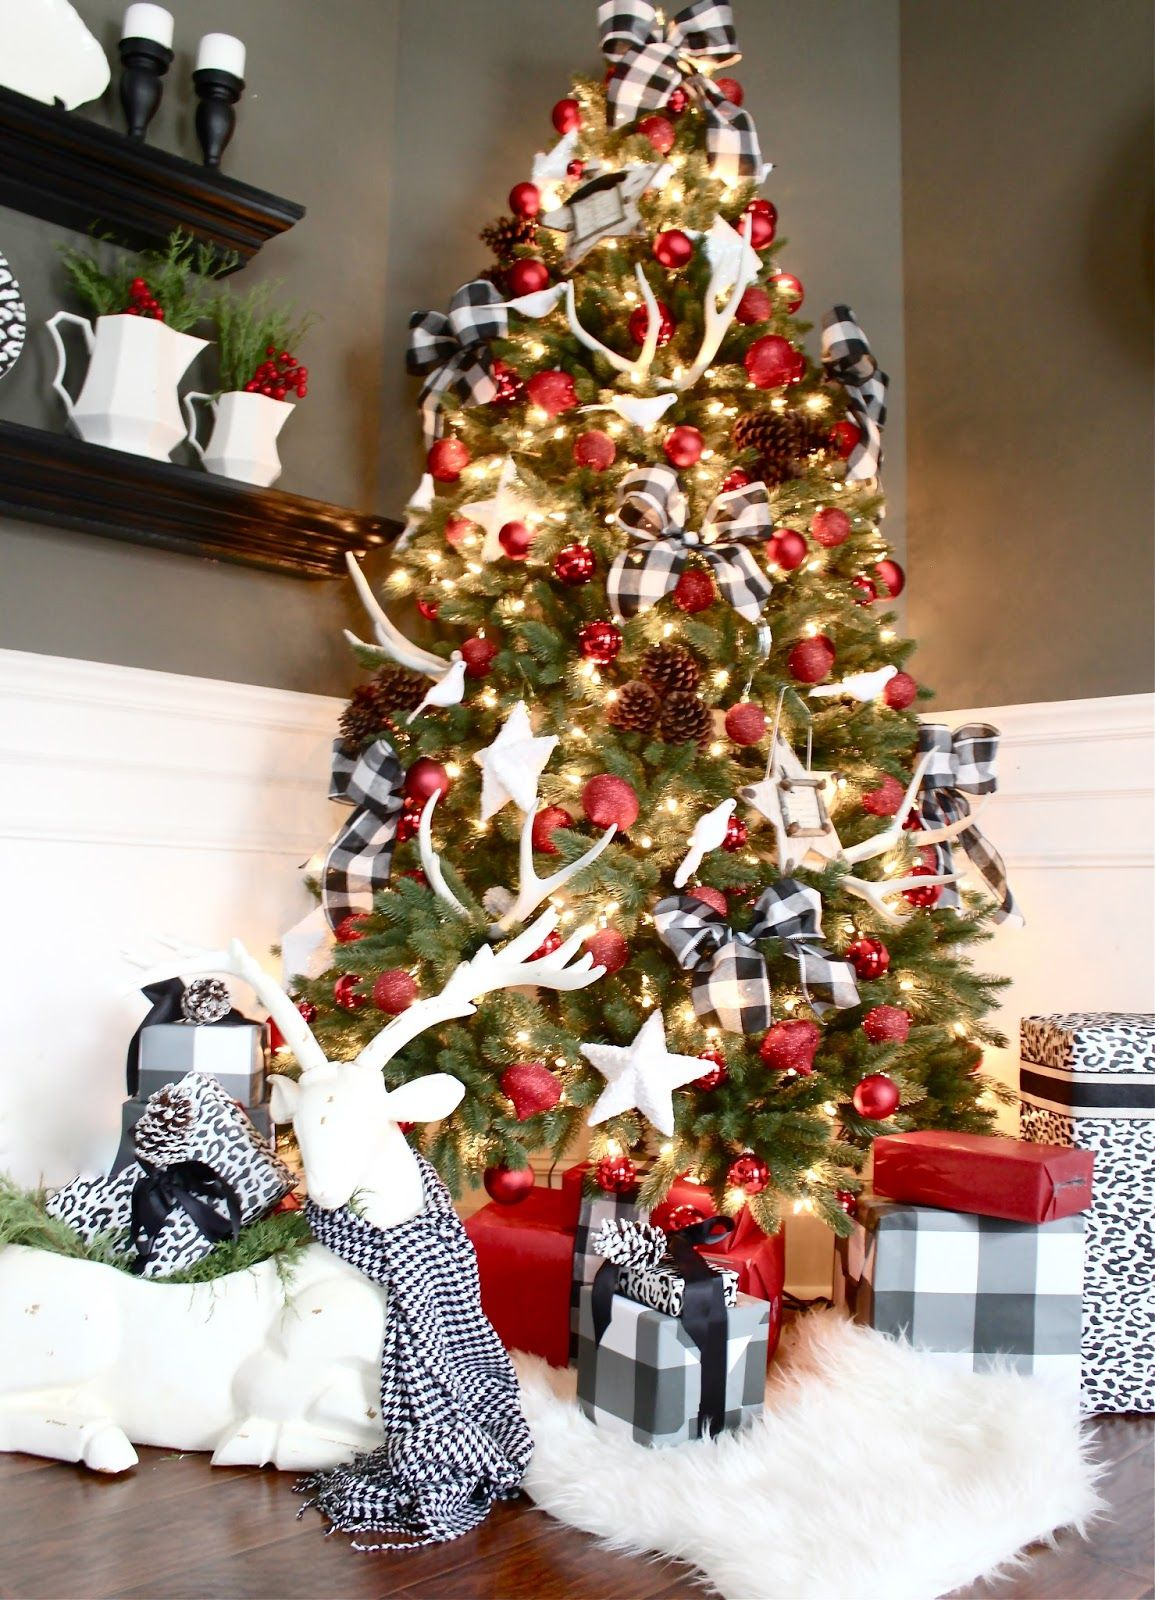 buffalo check christmas style series full of decor inspiration ideas and decor finds to add the classic fun feel of buffalo check to your christmas - Red And Black Plaid Christmas Decor